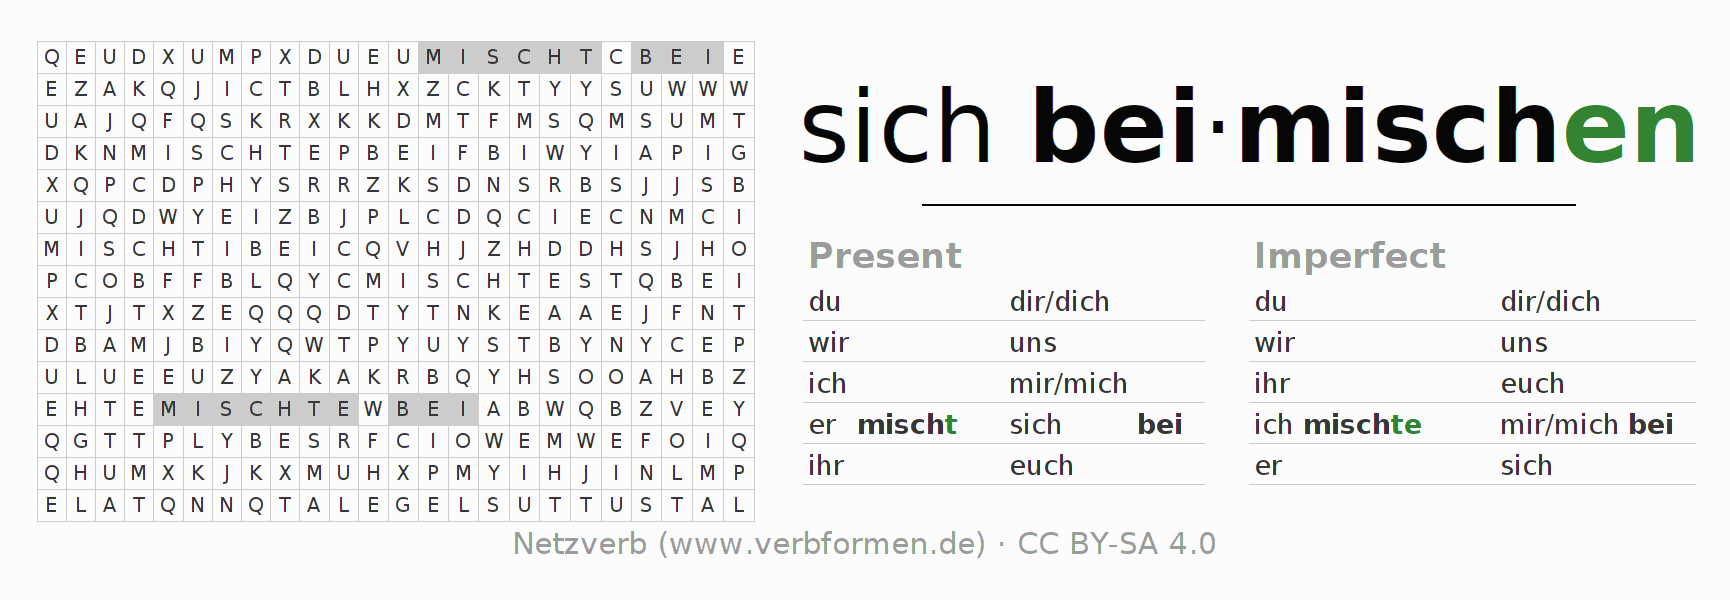 Word search puzzle for the conjugation of the verb sich beimischen